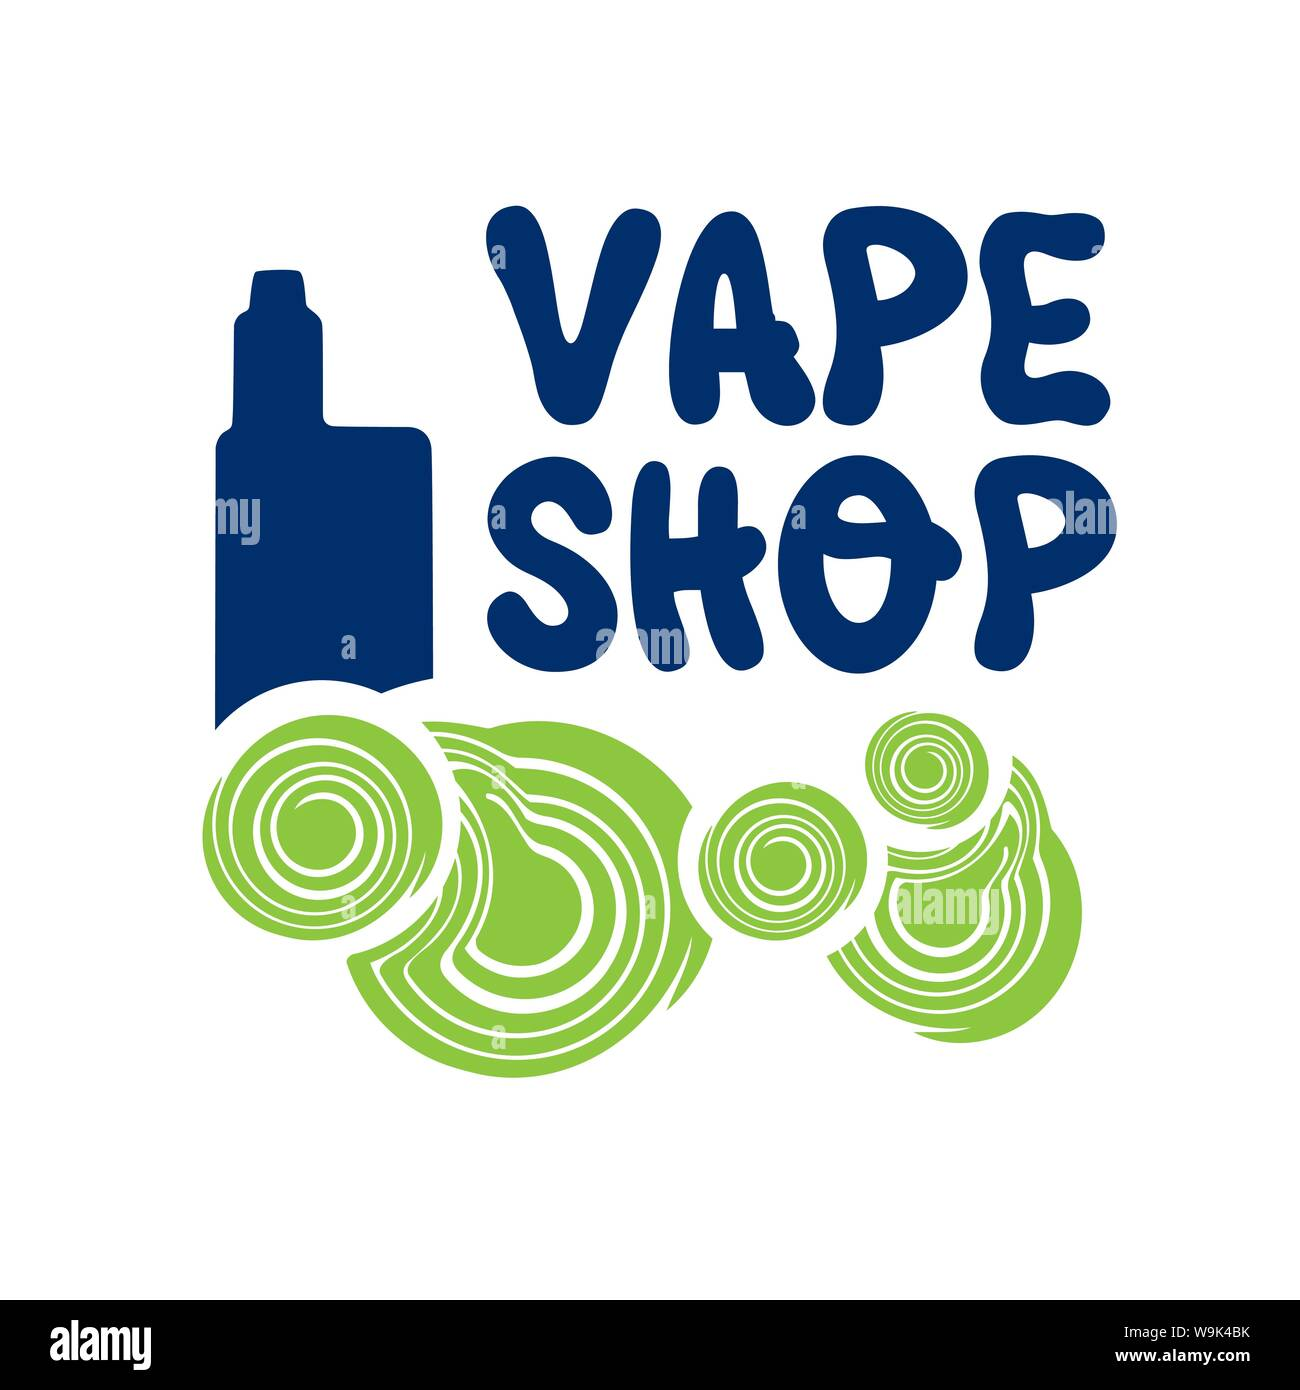 Vape Cloud Cut Out Stock Images & Pictures - Alamy